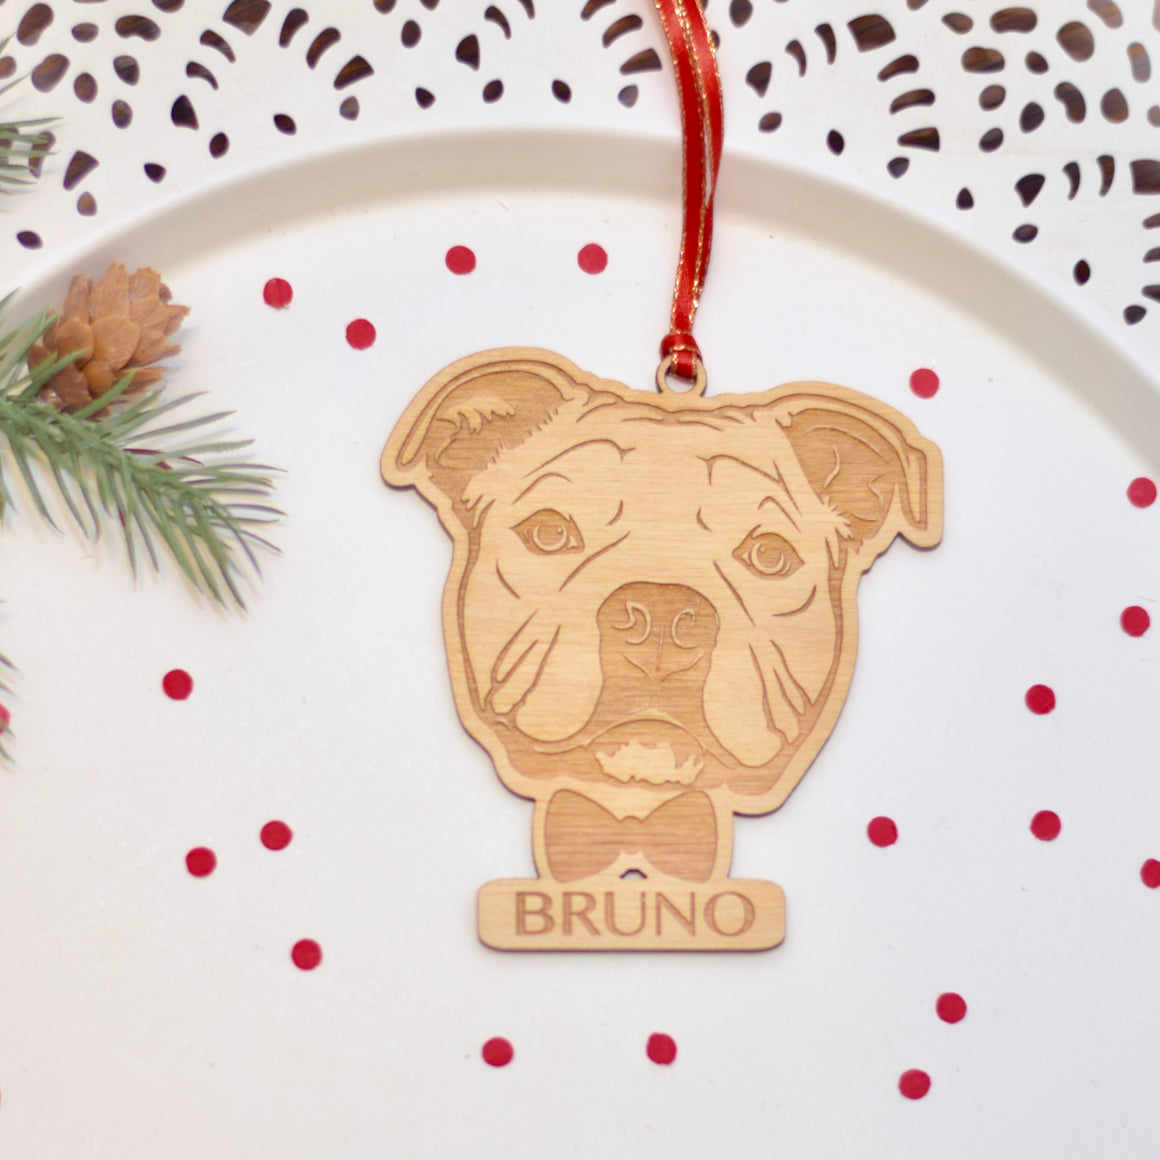 French bully ornament on a cake plate with red confetti